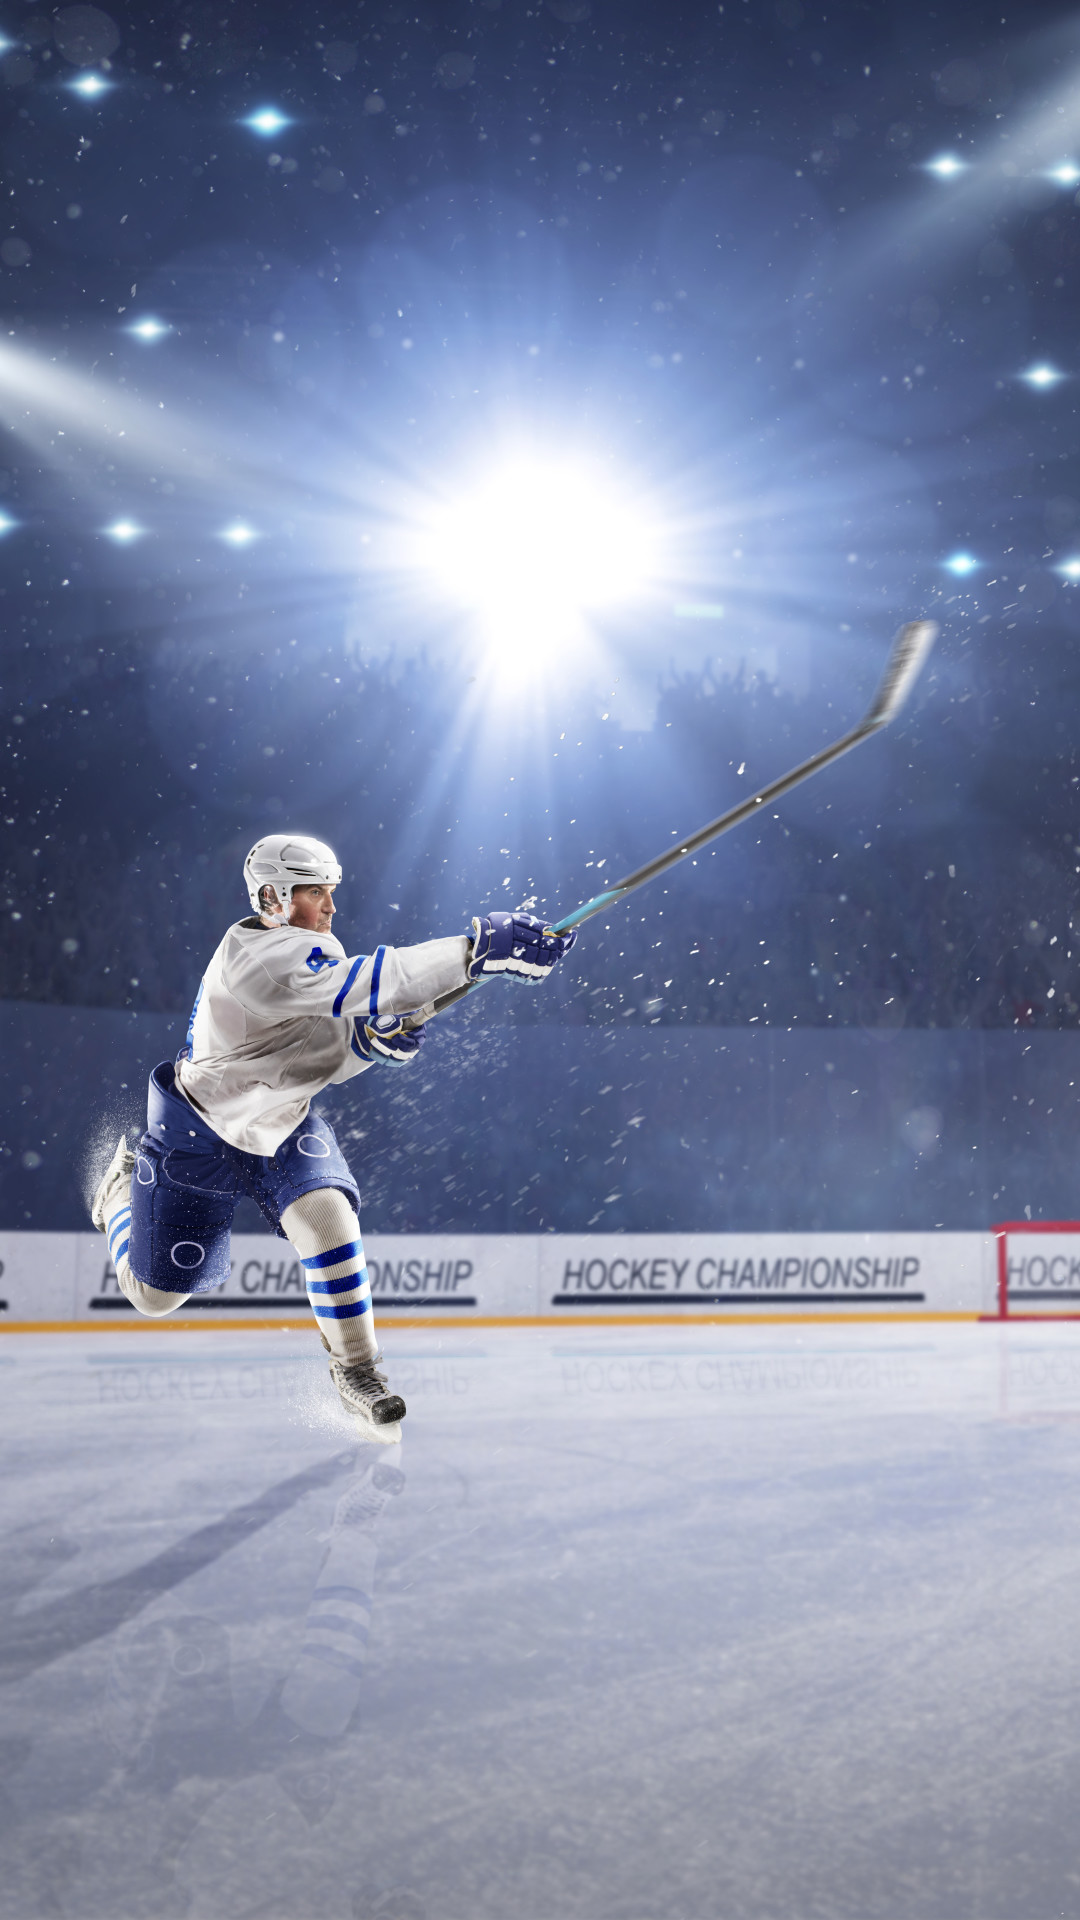 Cool 3d Ipad Wallpapers Hockey Wallpaper 183 ①